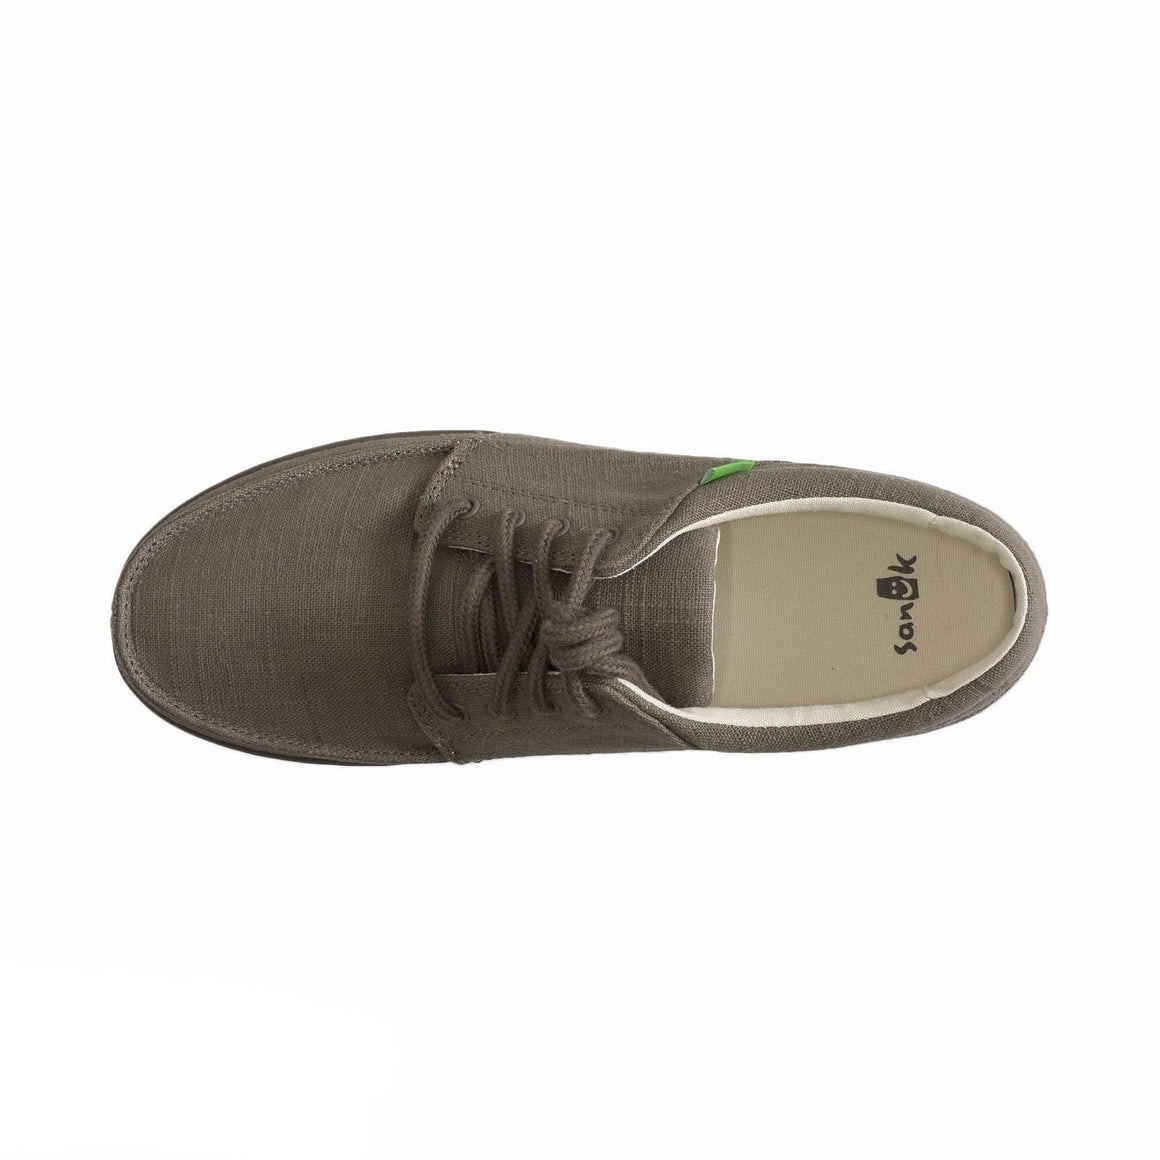 Sanuk TKO Brindle Shoes